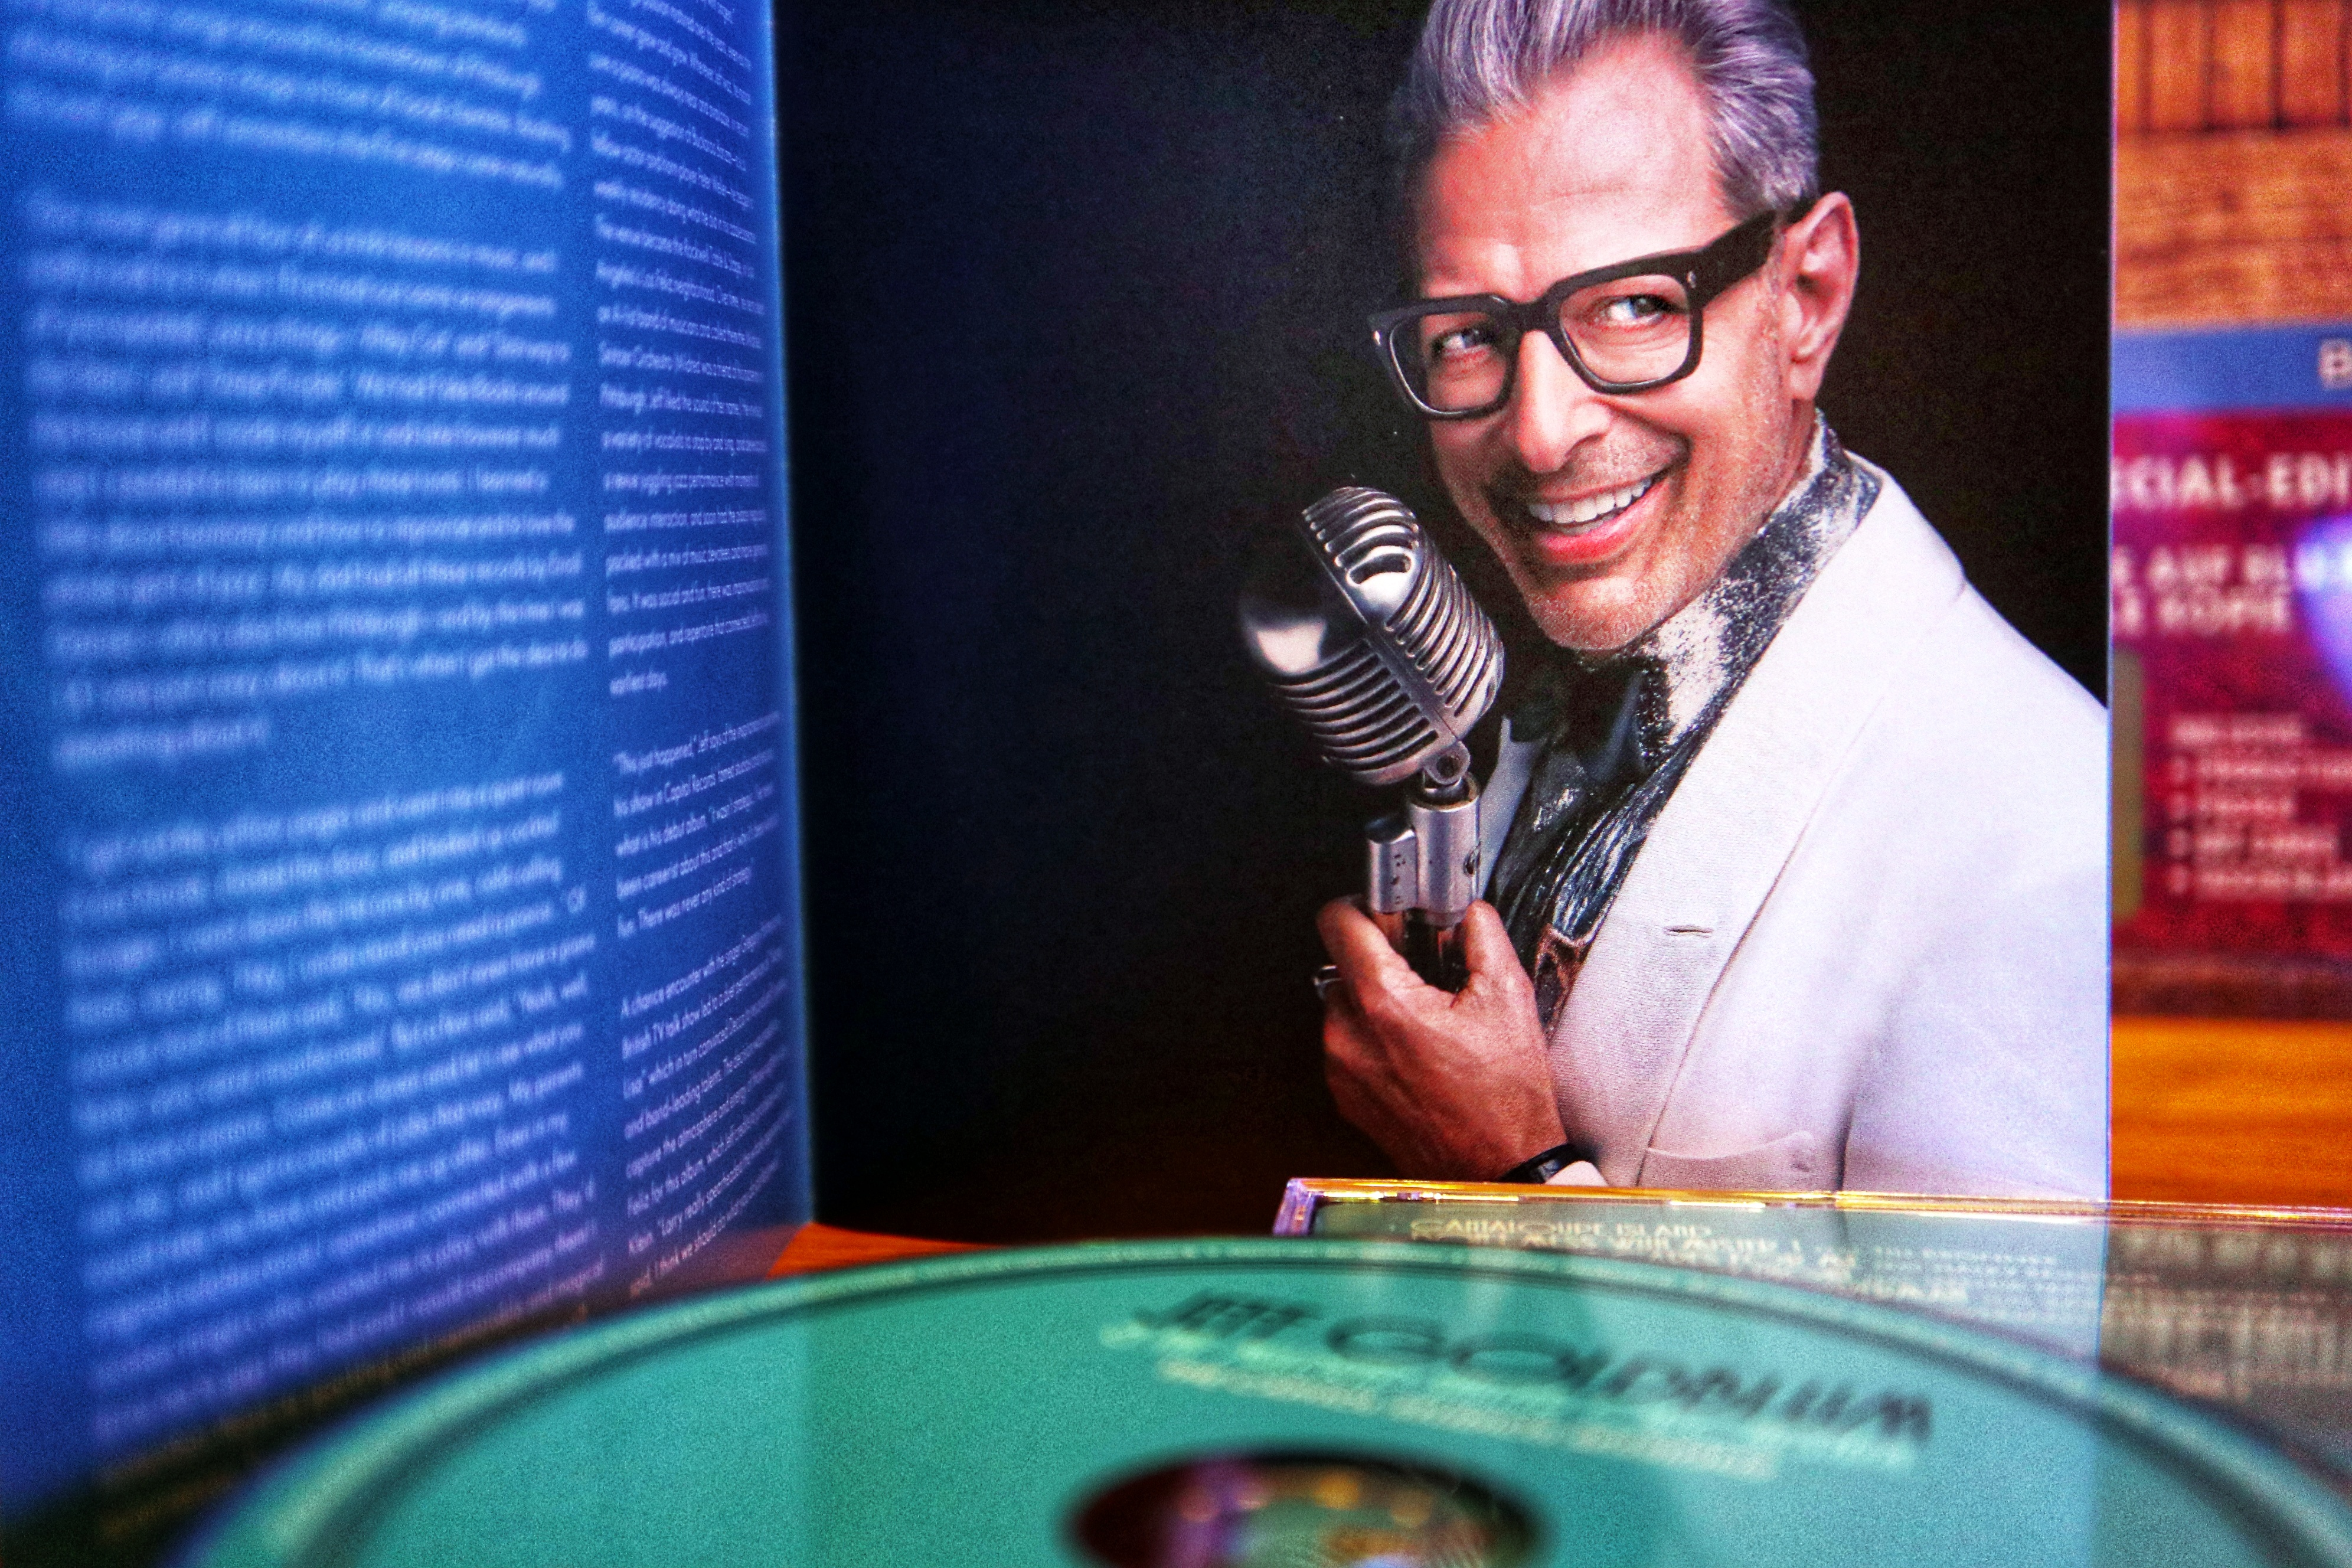 Jeff Goldblum Foto Booklet